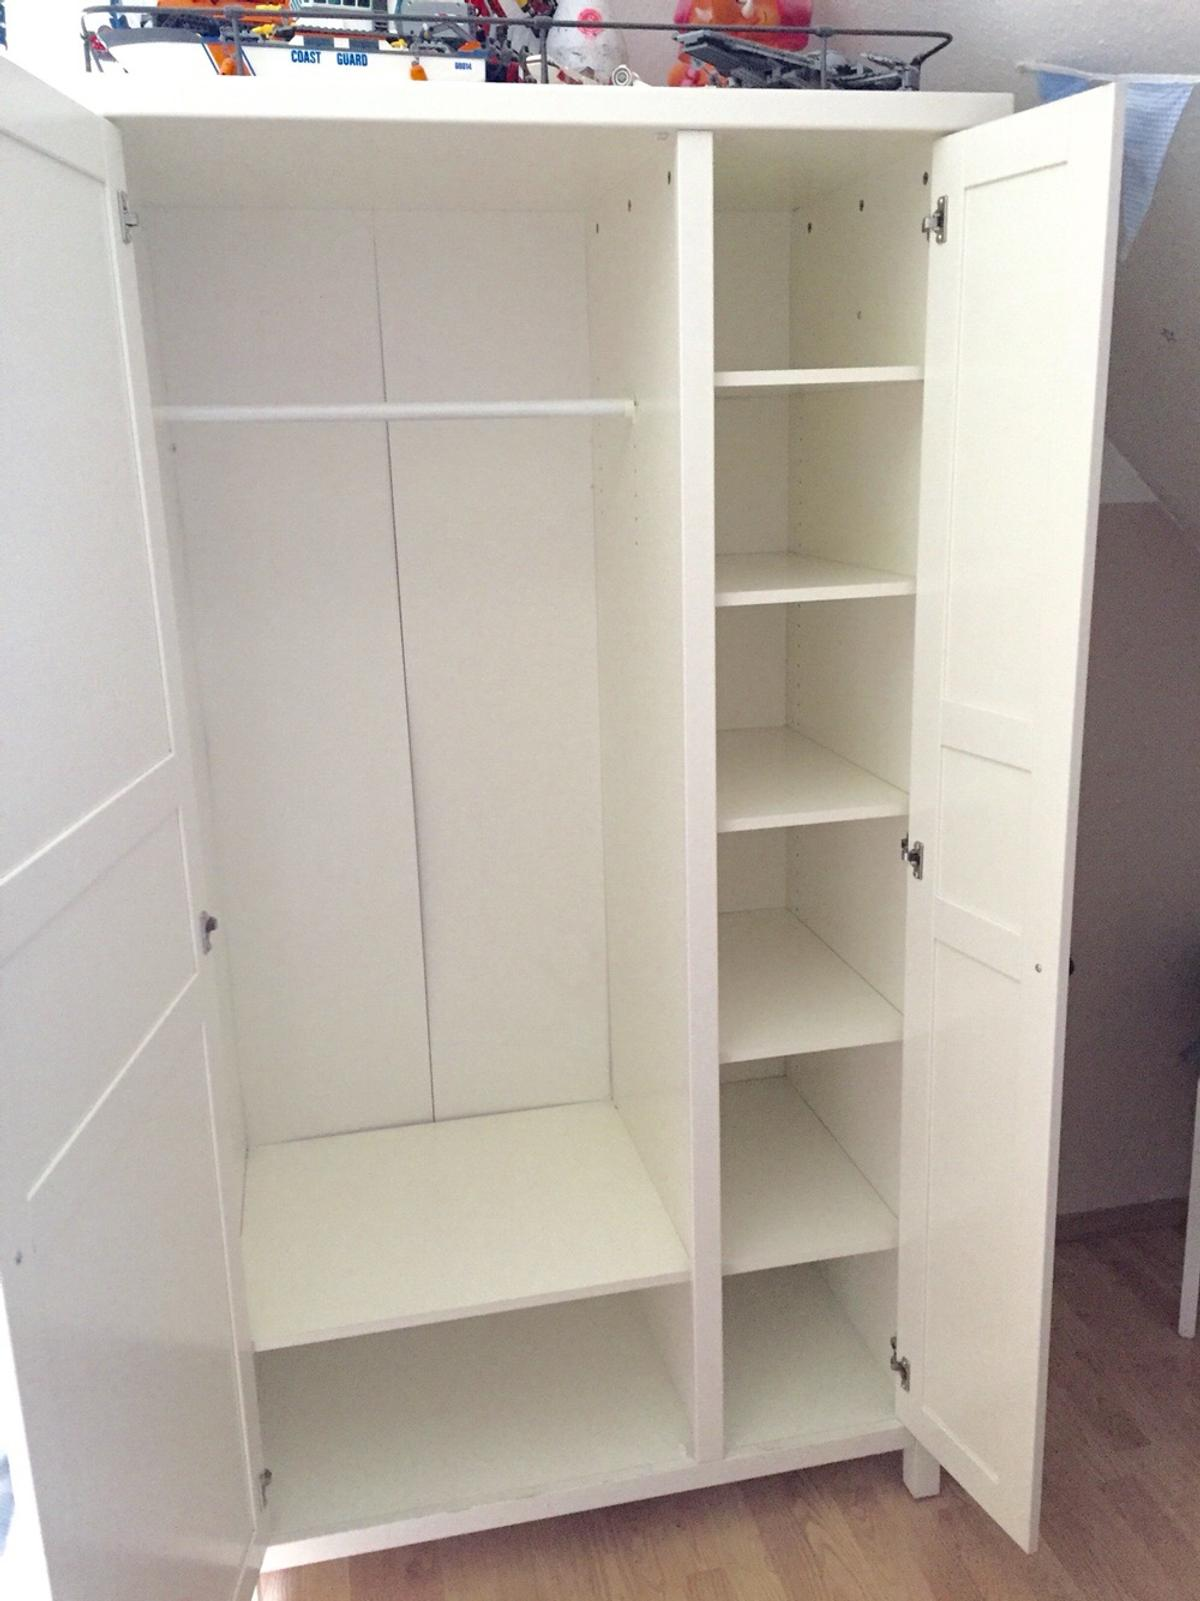 Ikea Hemnes Schrank Weiss In 15745 Wildau For 160 00 For Sale Shpock